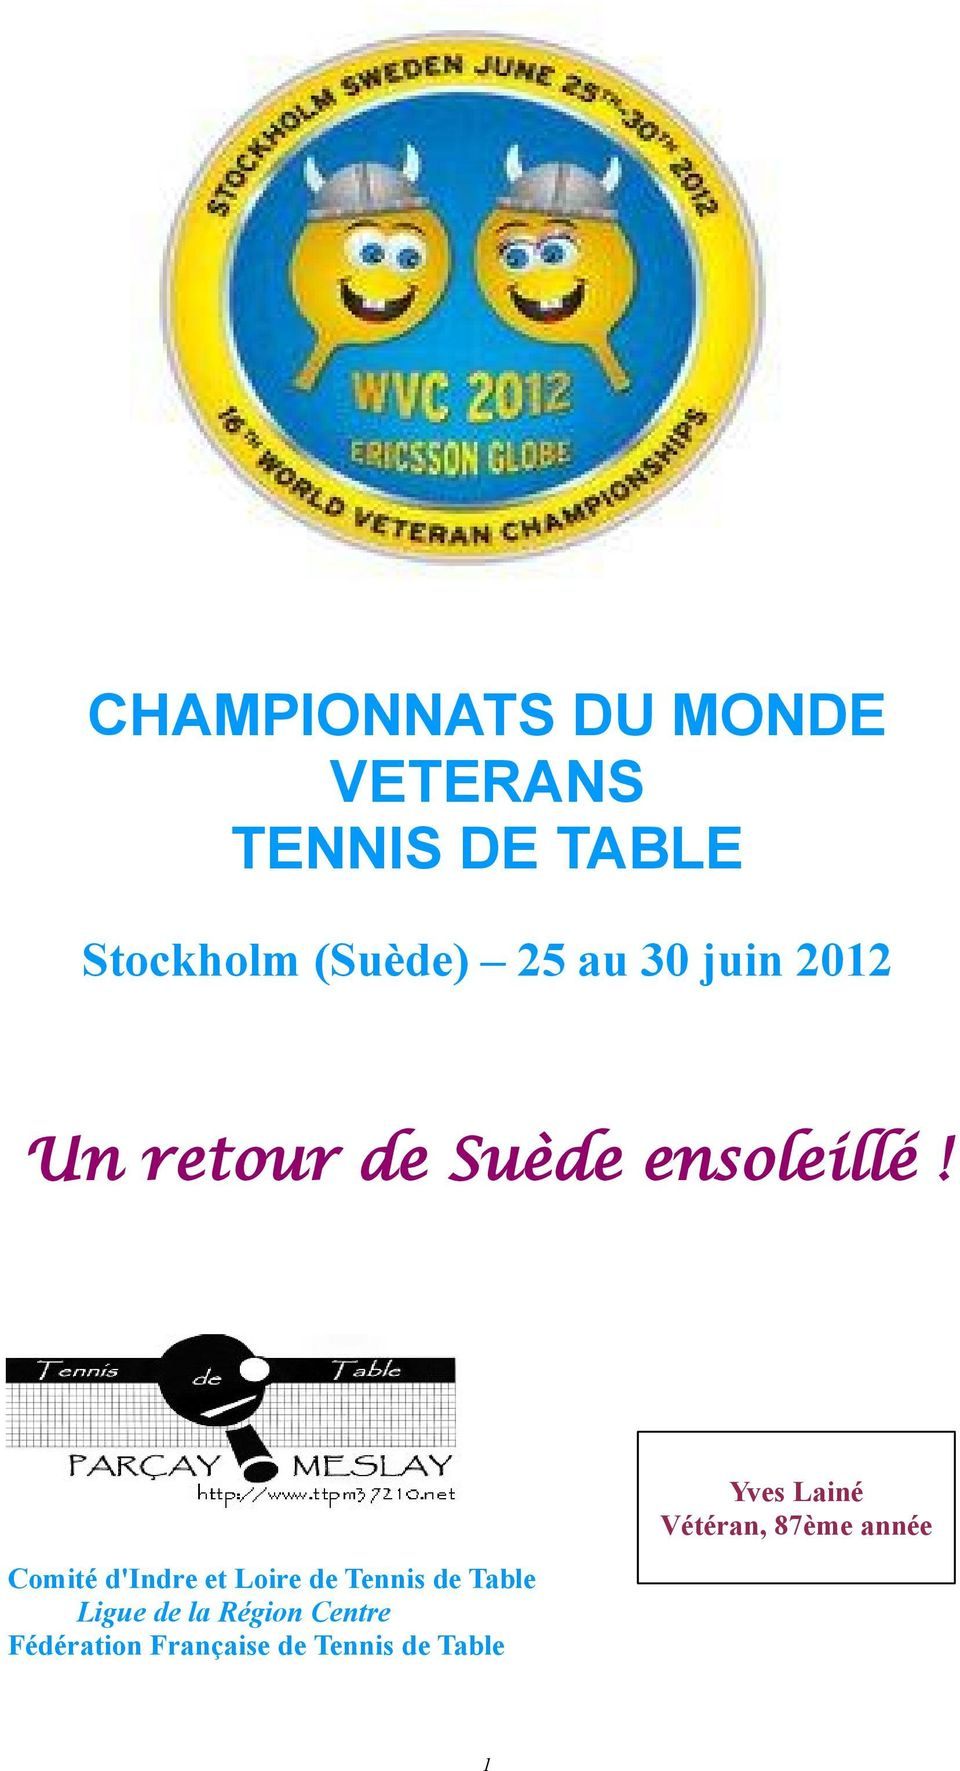 Championnats du monde veterans tennis de table pdf - Tennis de table championnat du monde ...